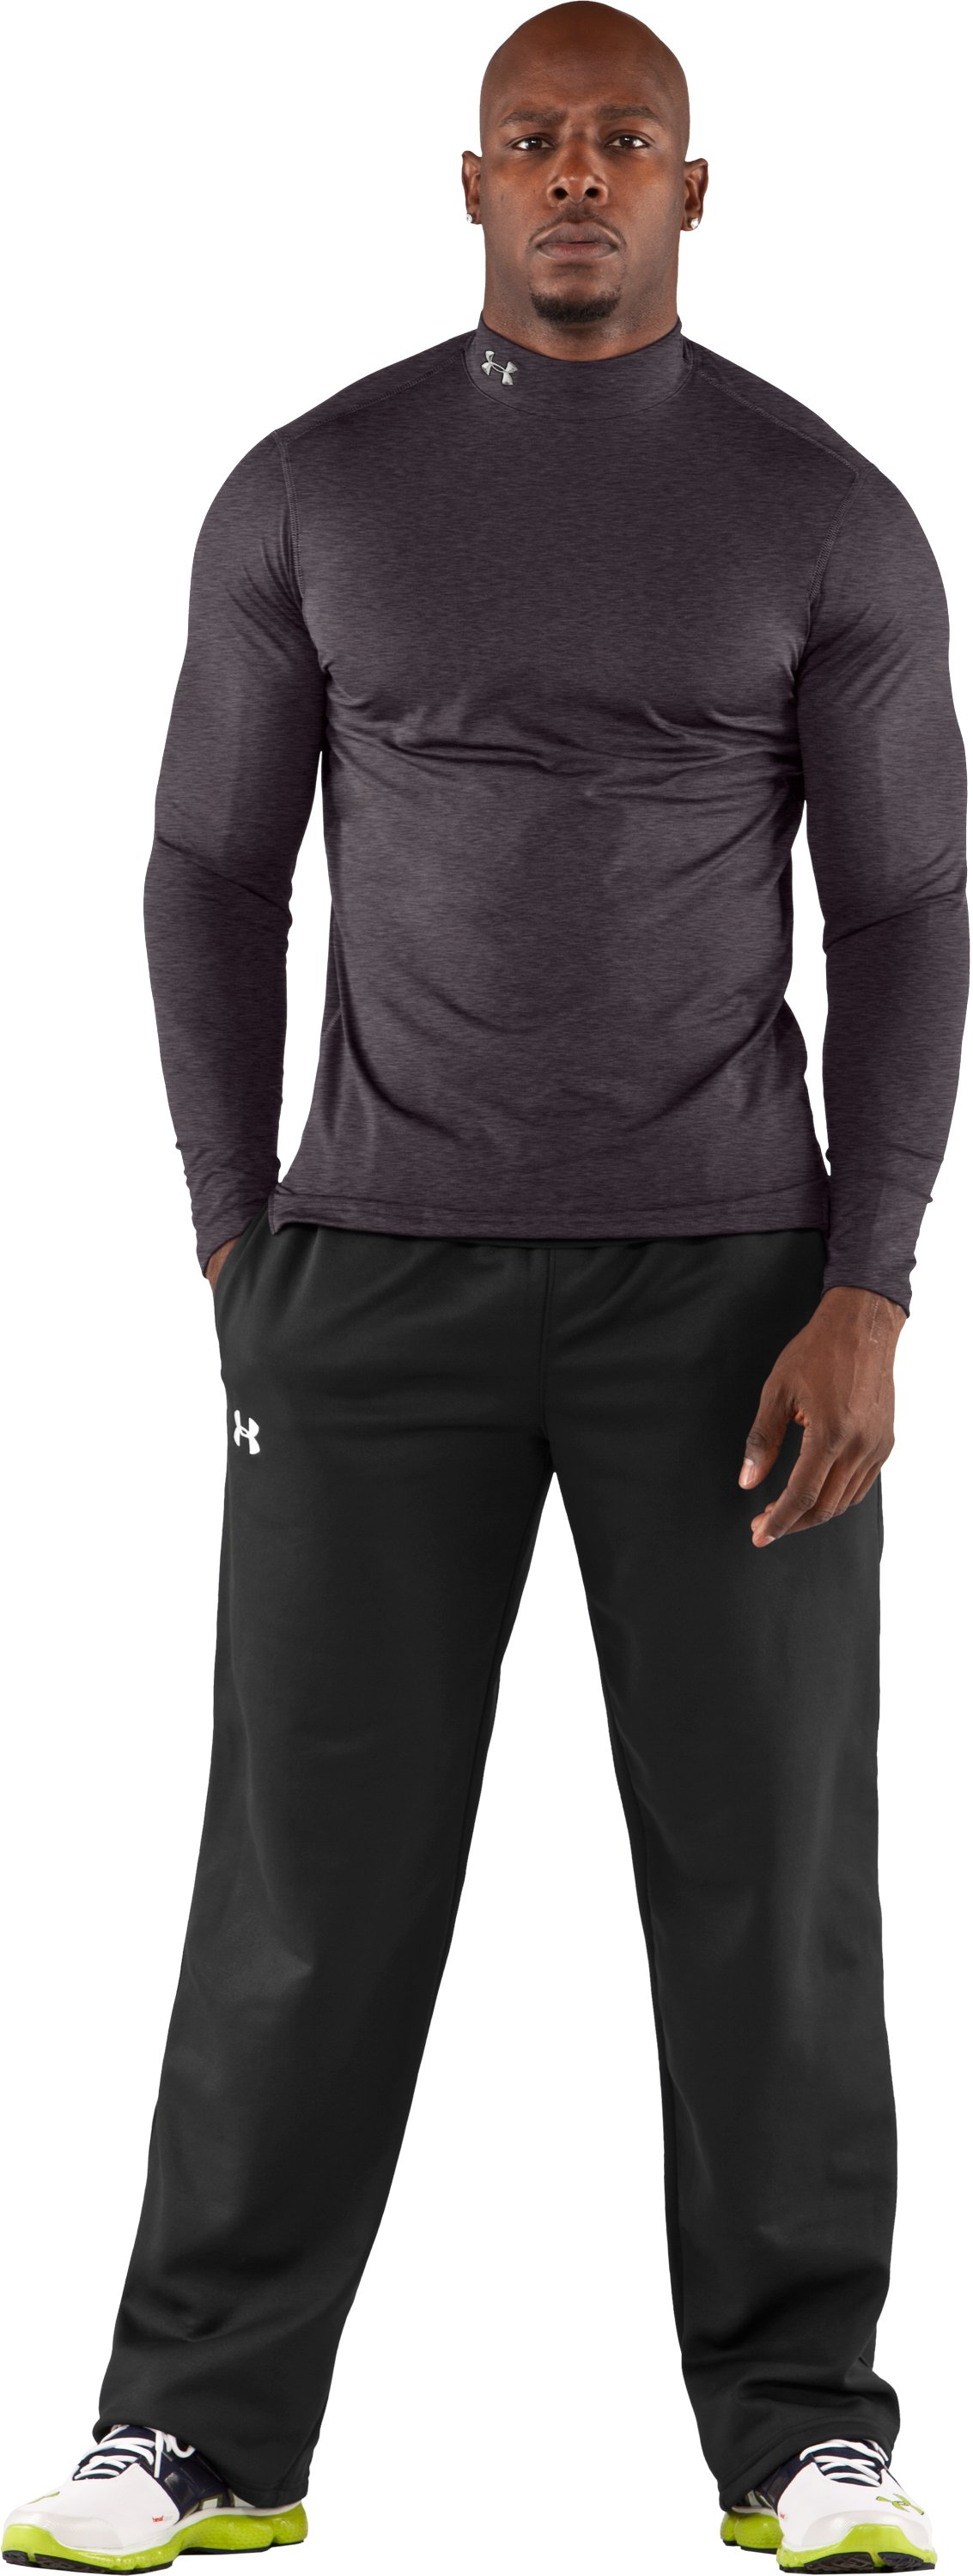 Men's ColdGear® Fitted Long Sleeve Mock, Carbon Heather